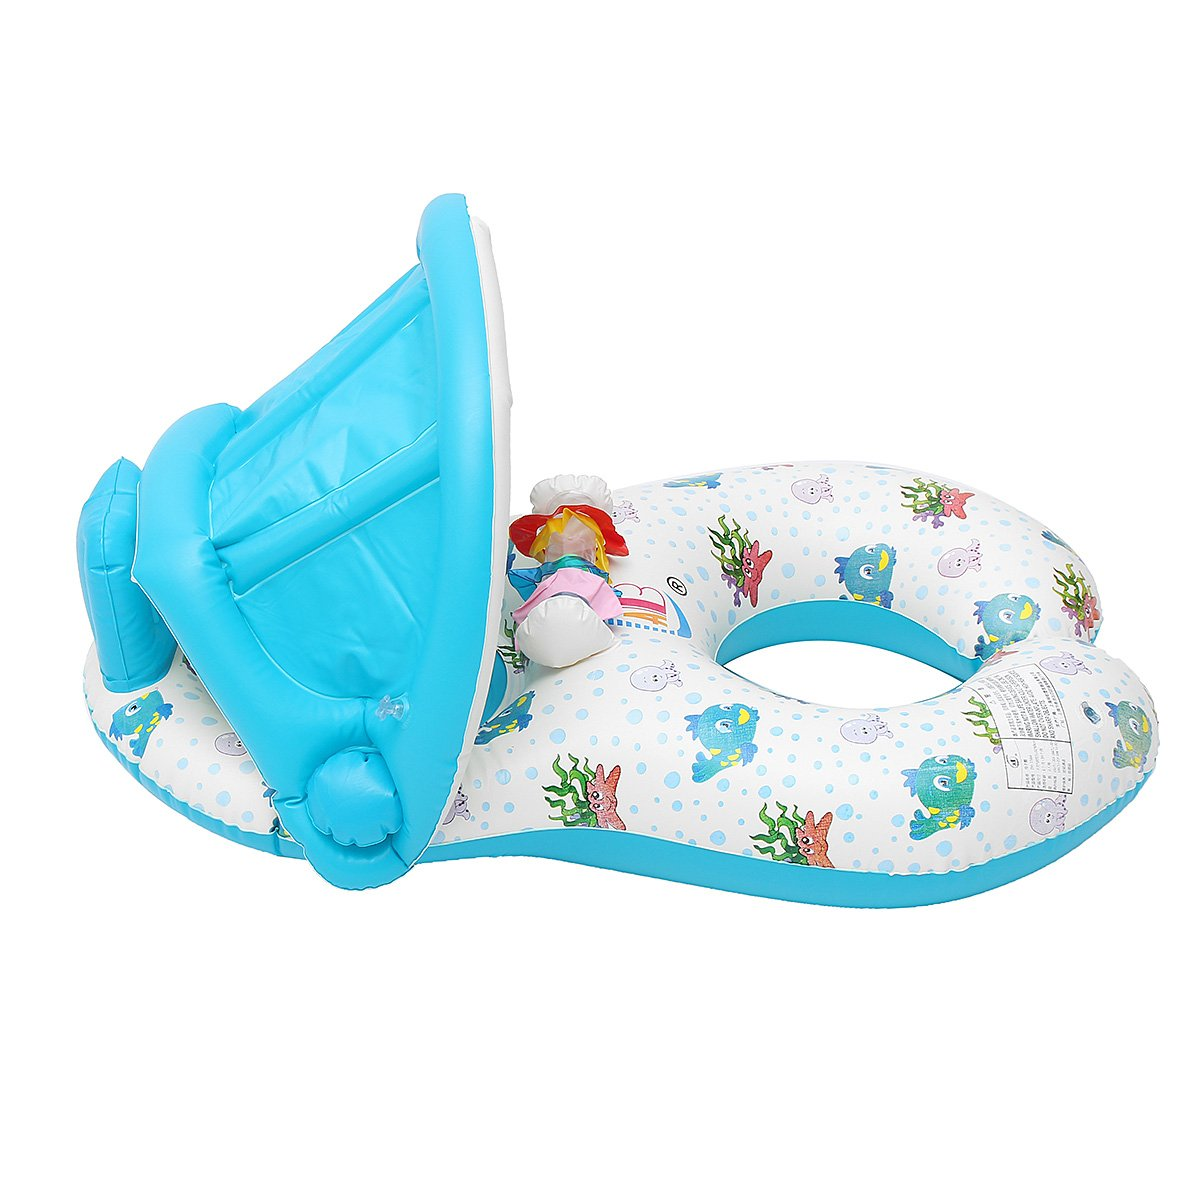 Water Sports WD Inflatable Mother Baby Swimming Ring Swim Pool Water Seat Float with Canopy Sunshade by Wincom Dishman (Image #4)